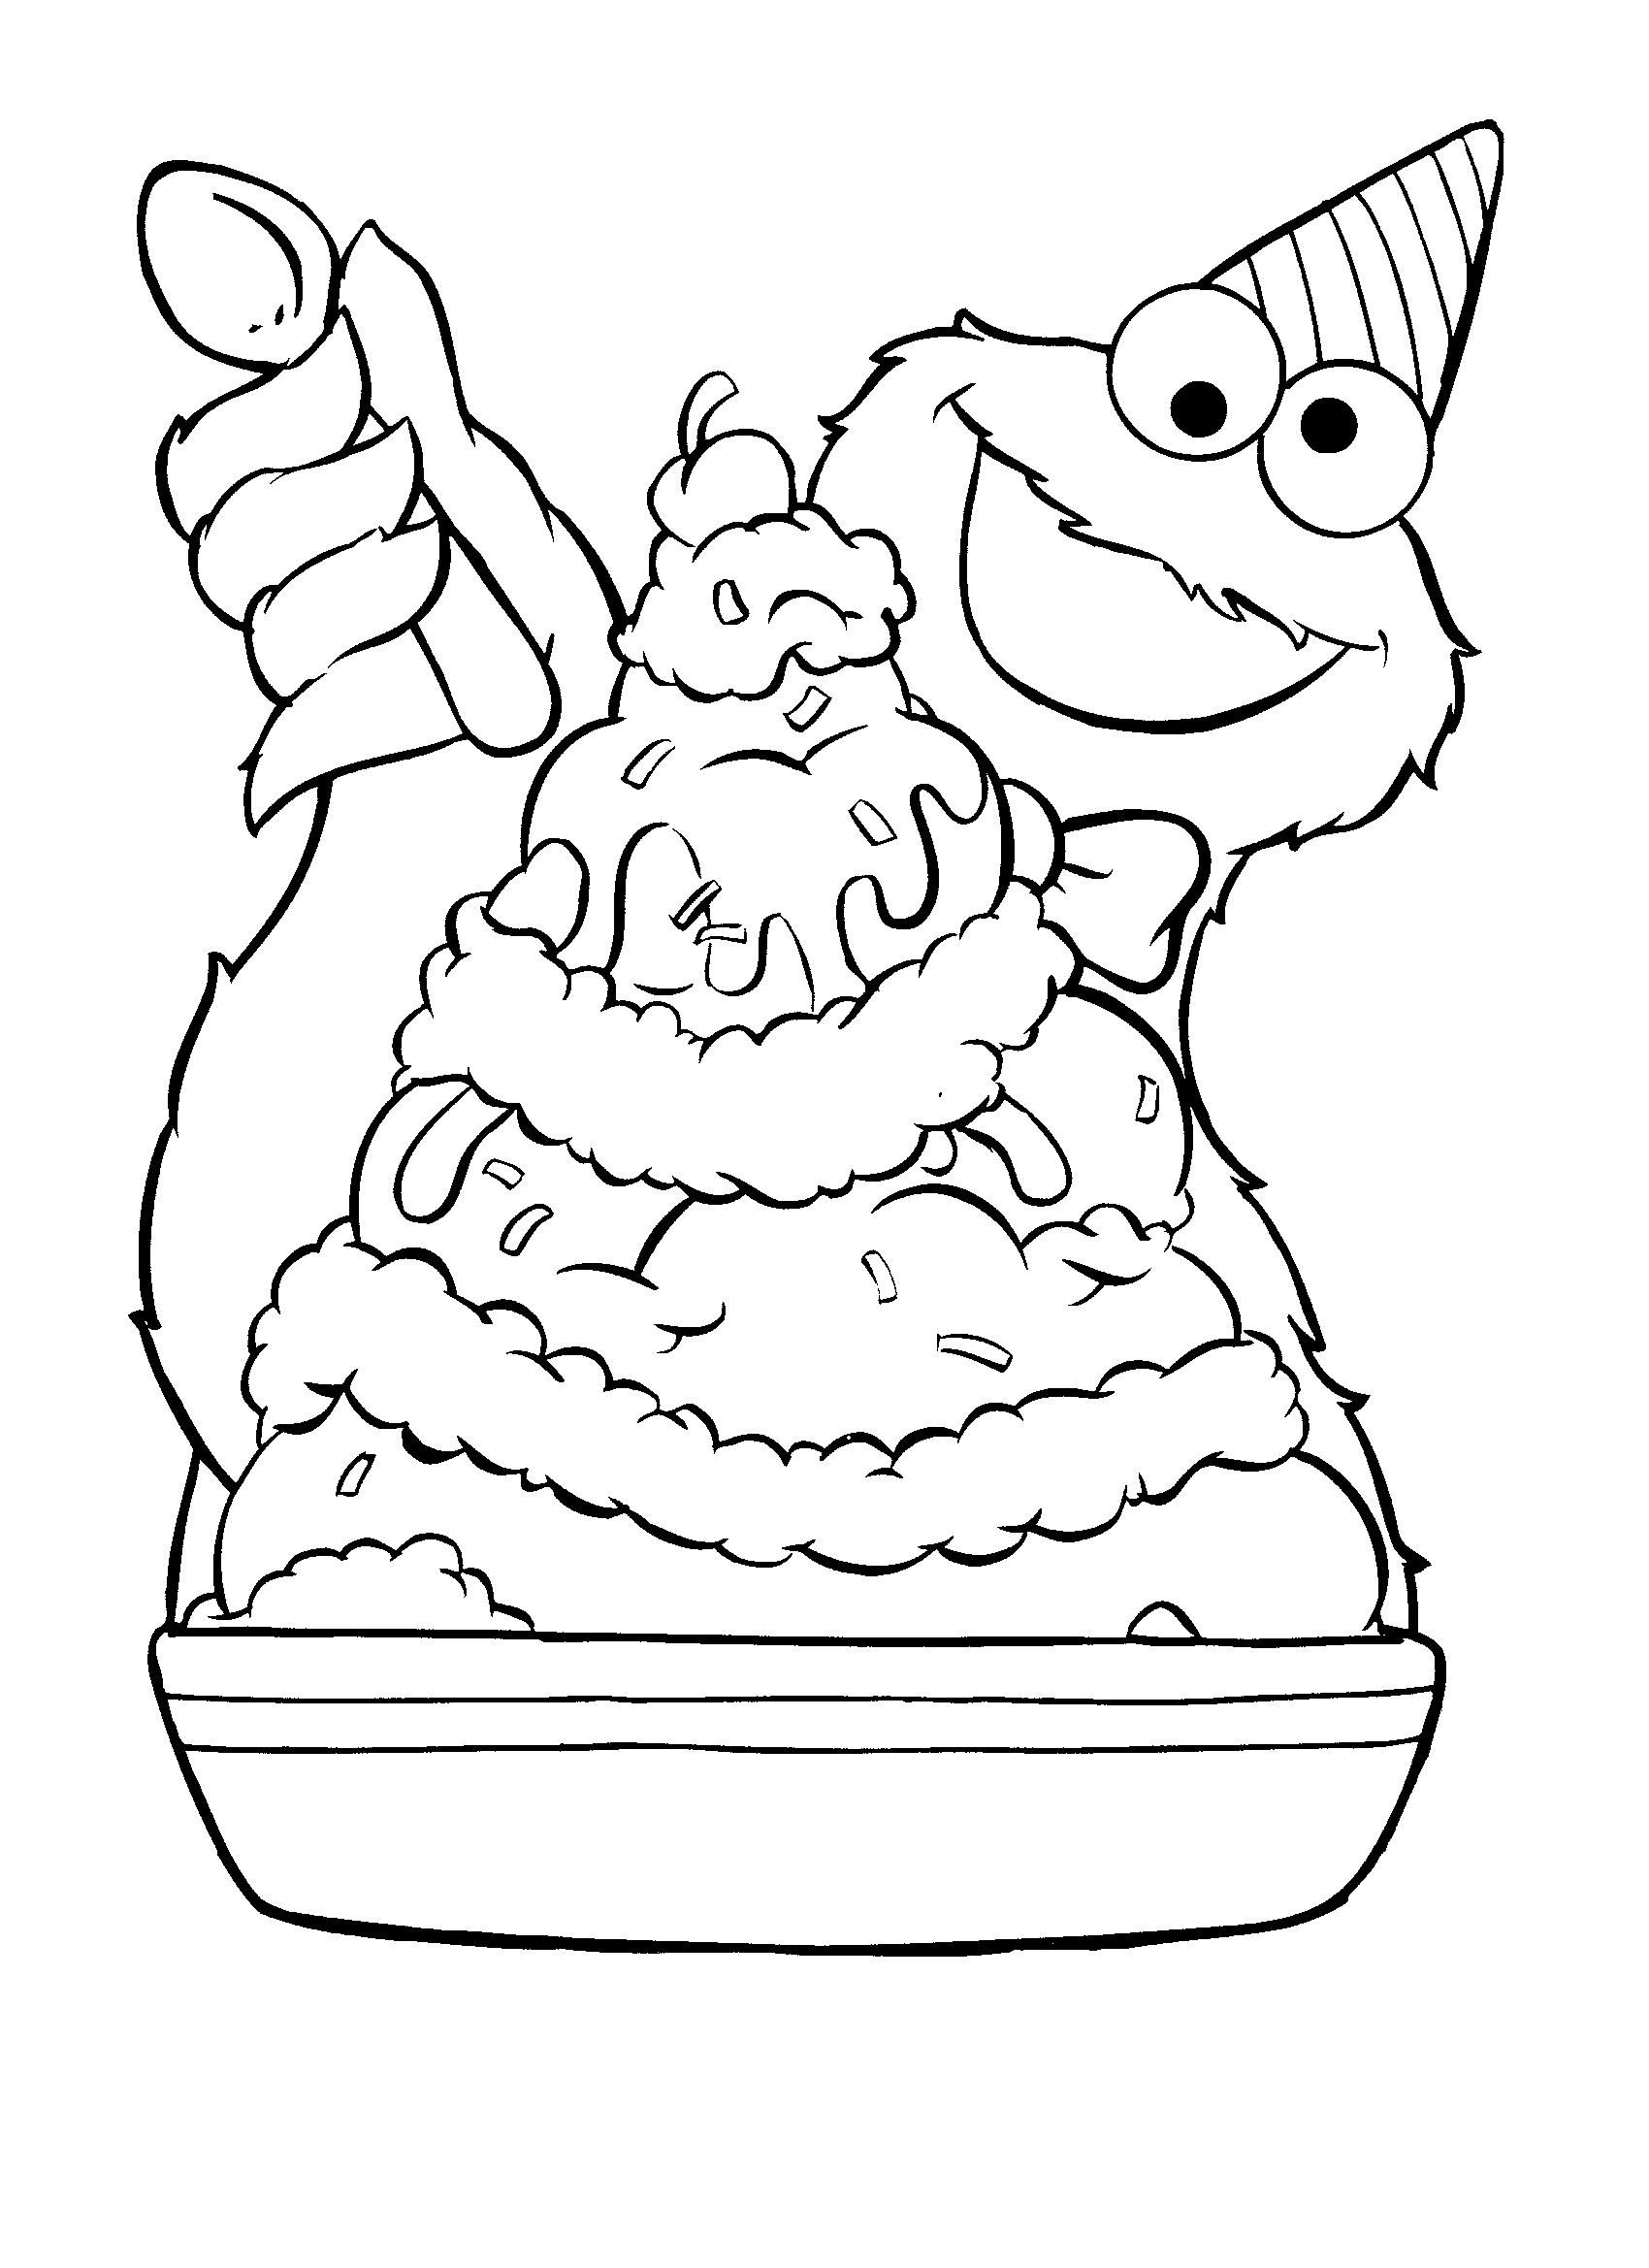 Cookie Monster / Ice Cream Sundae (Coloring Pages